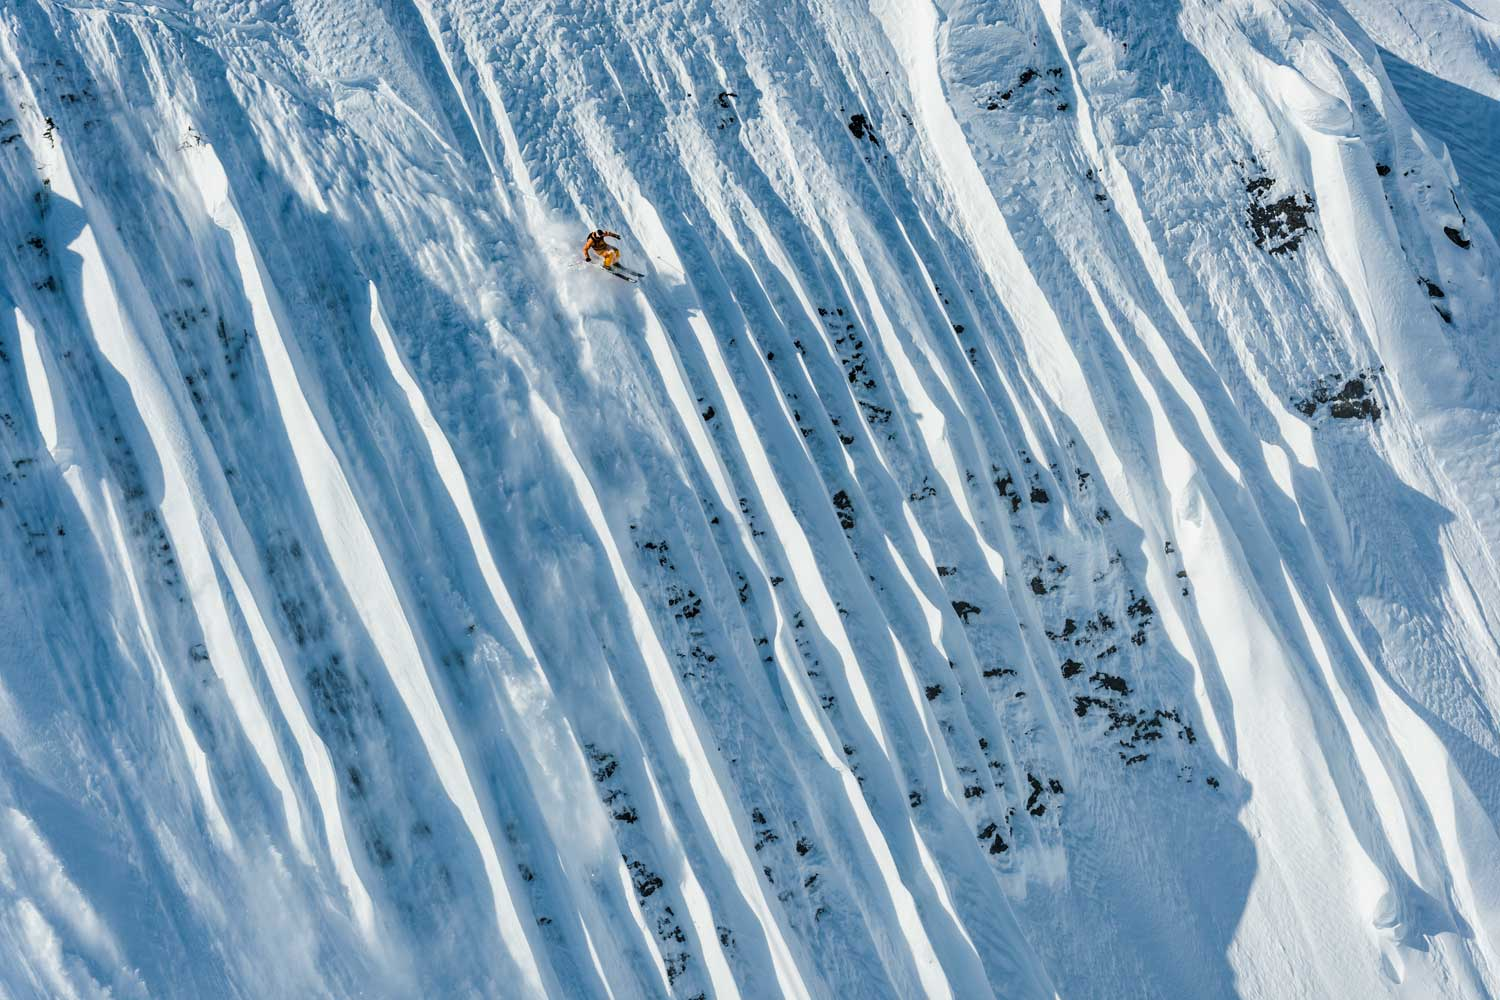 Professional skiers slicing through the side of a snow-covered mountain.